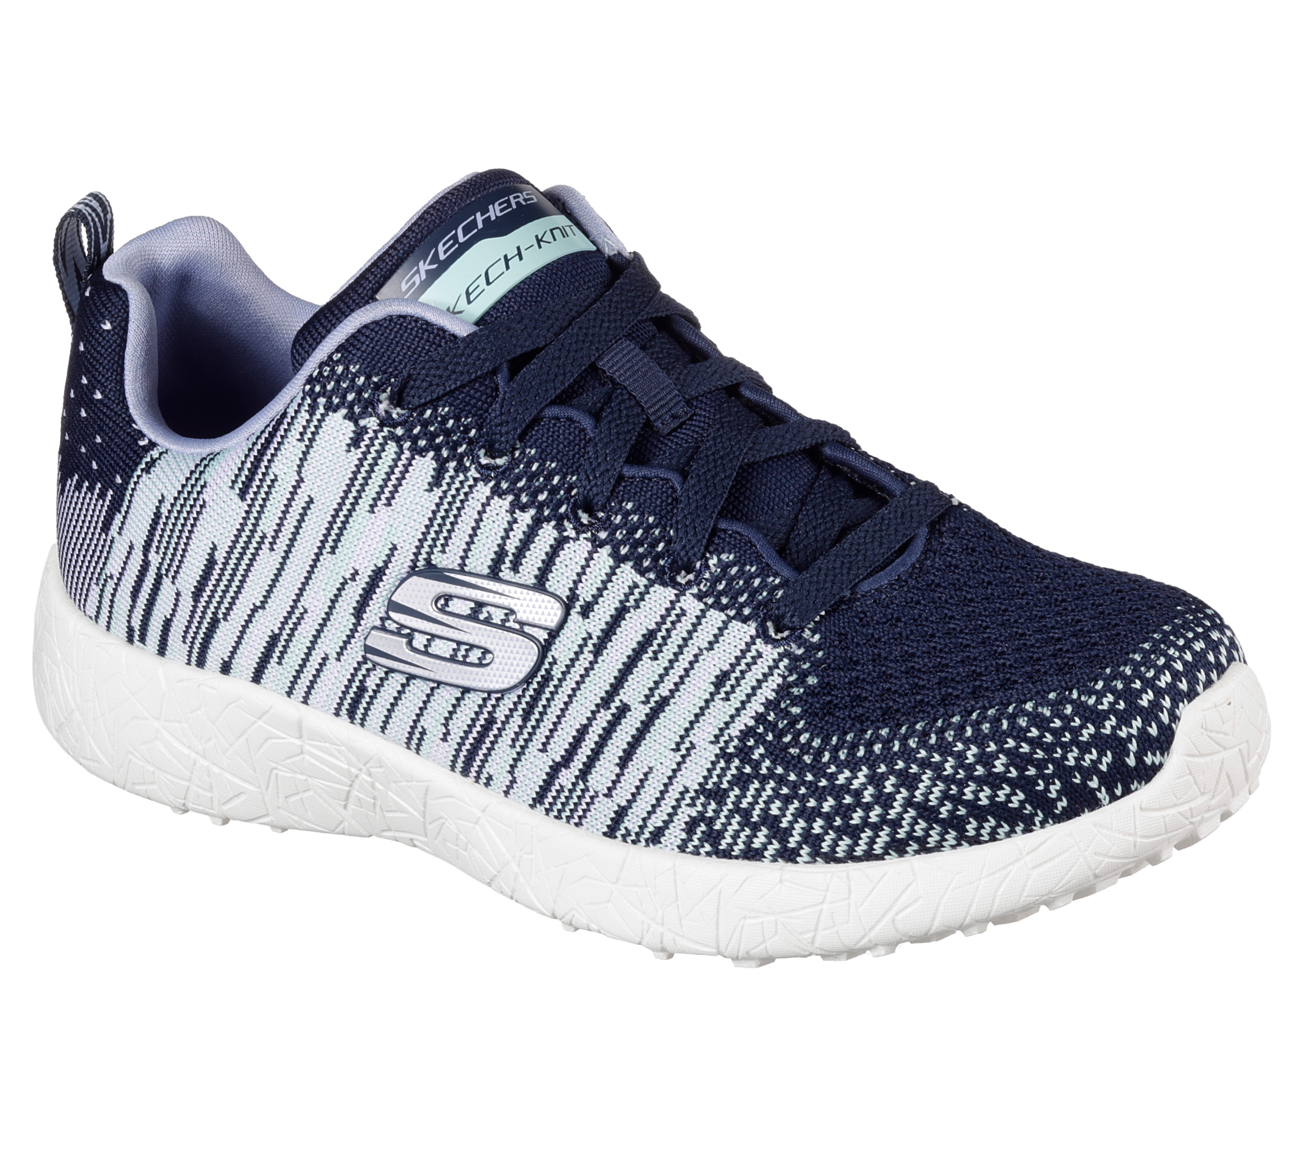 Performance Shoe That Comes In Blue And White